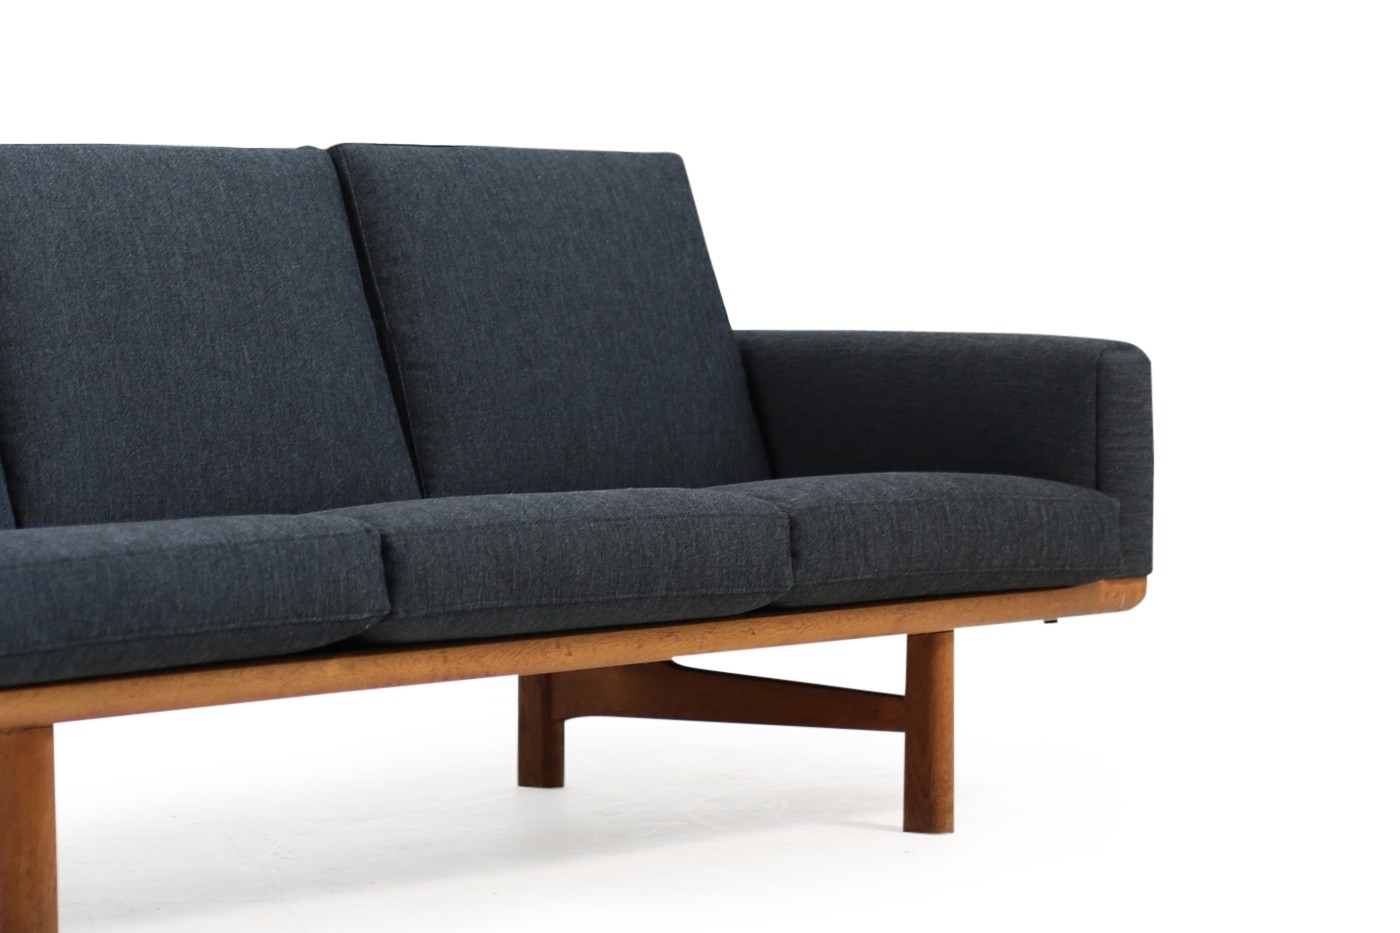 hans j wegner sofa ge 236 3 oak new upholstery getama 1950s. Black Bedroom Furniture Sets. Home Design Ideas